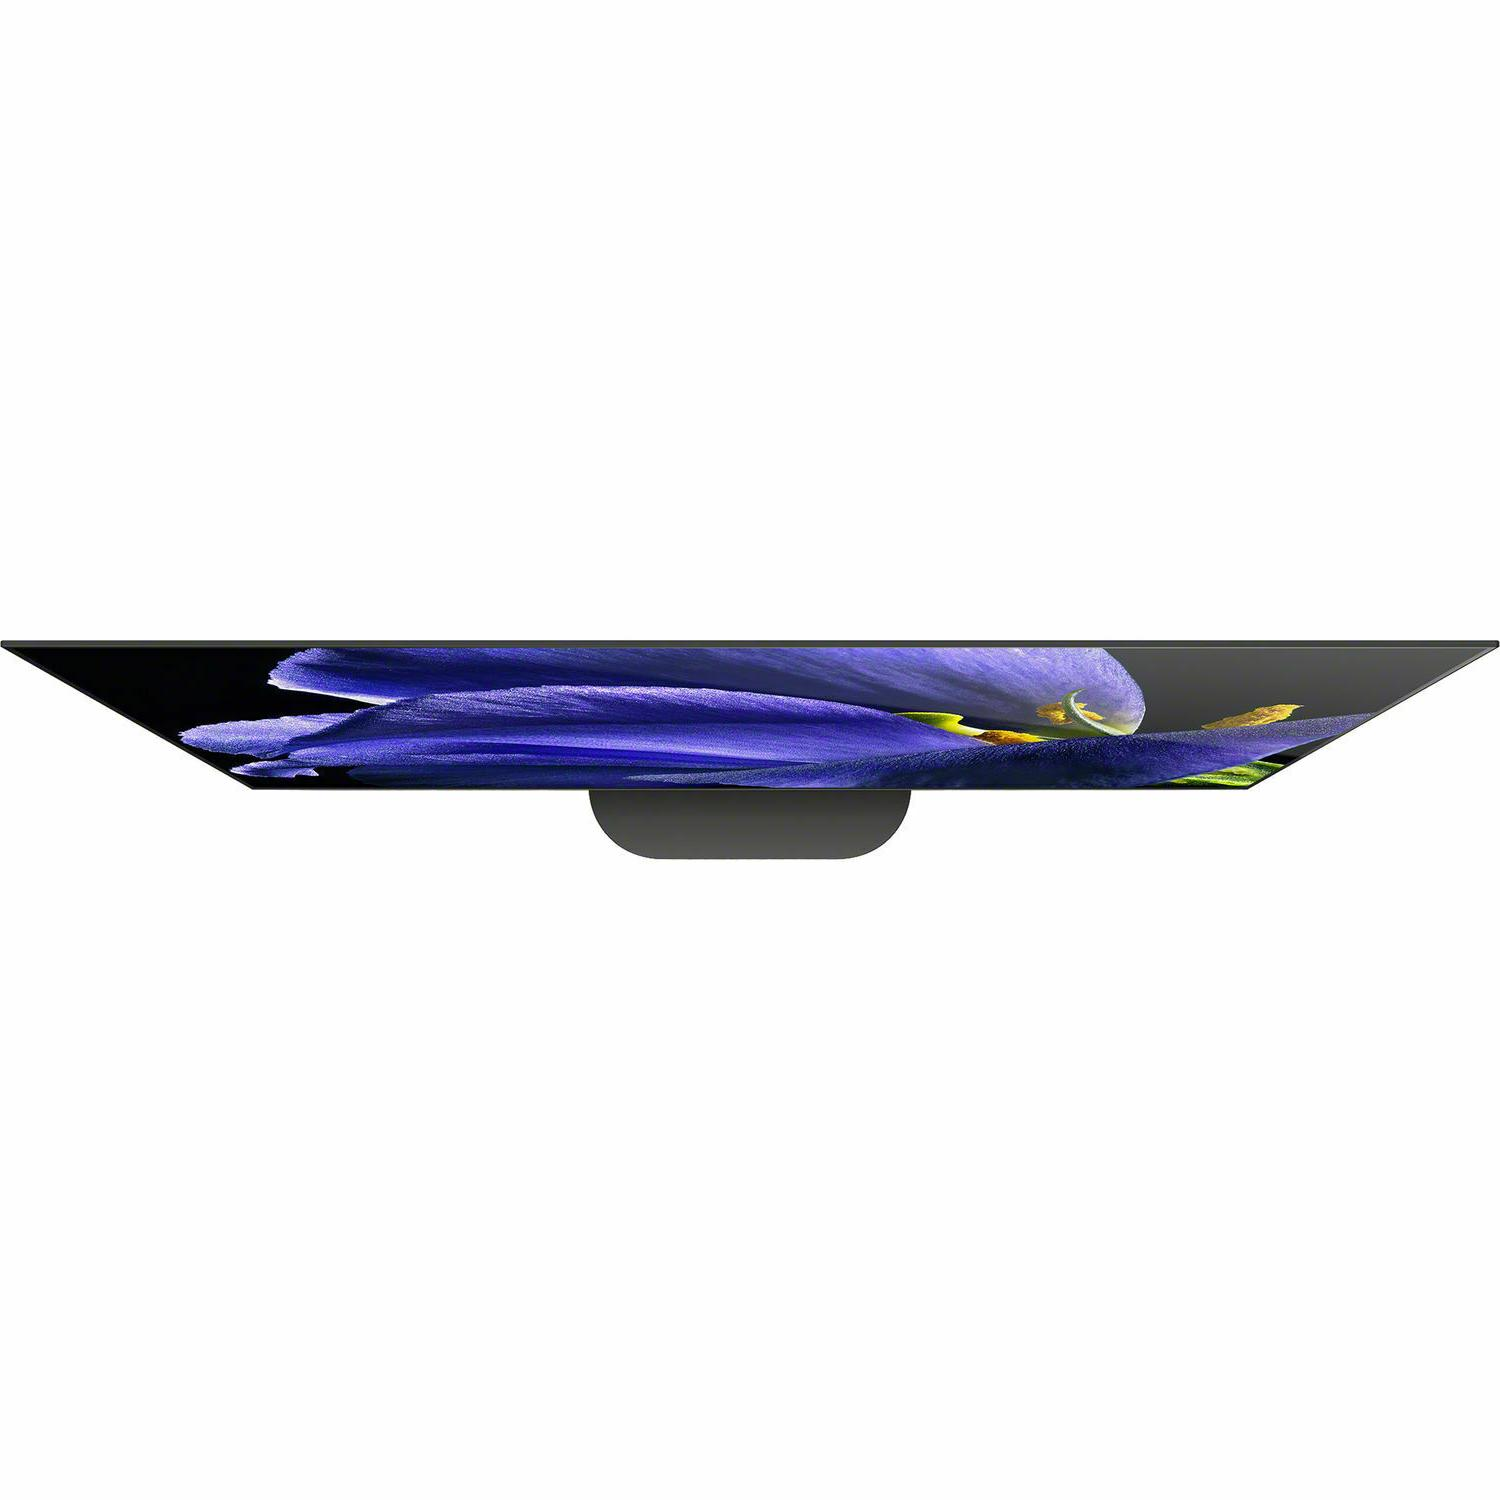 Sony MASTER OLED Ultra HD HDR Smart - XBR65A9G